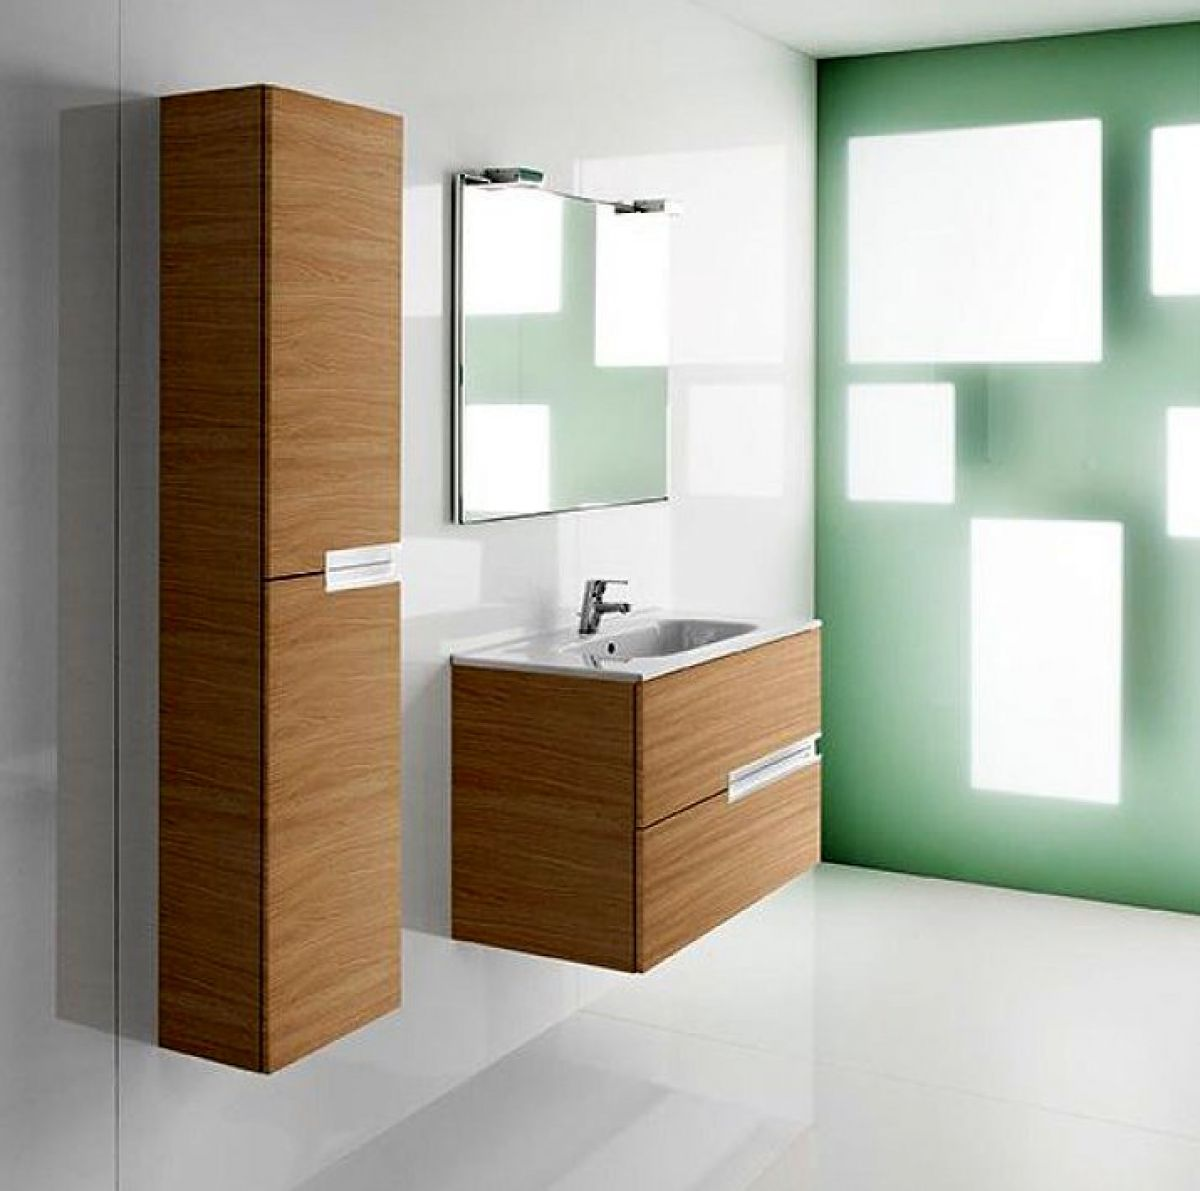 Roca victoria n tall column unit uk bathrooms for Mueble unik victoria